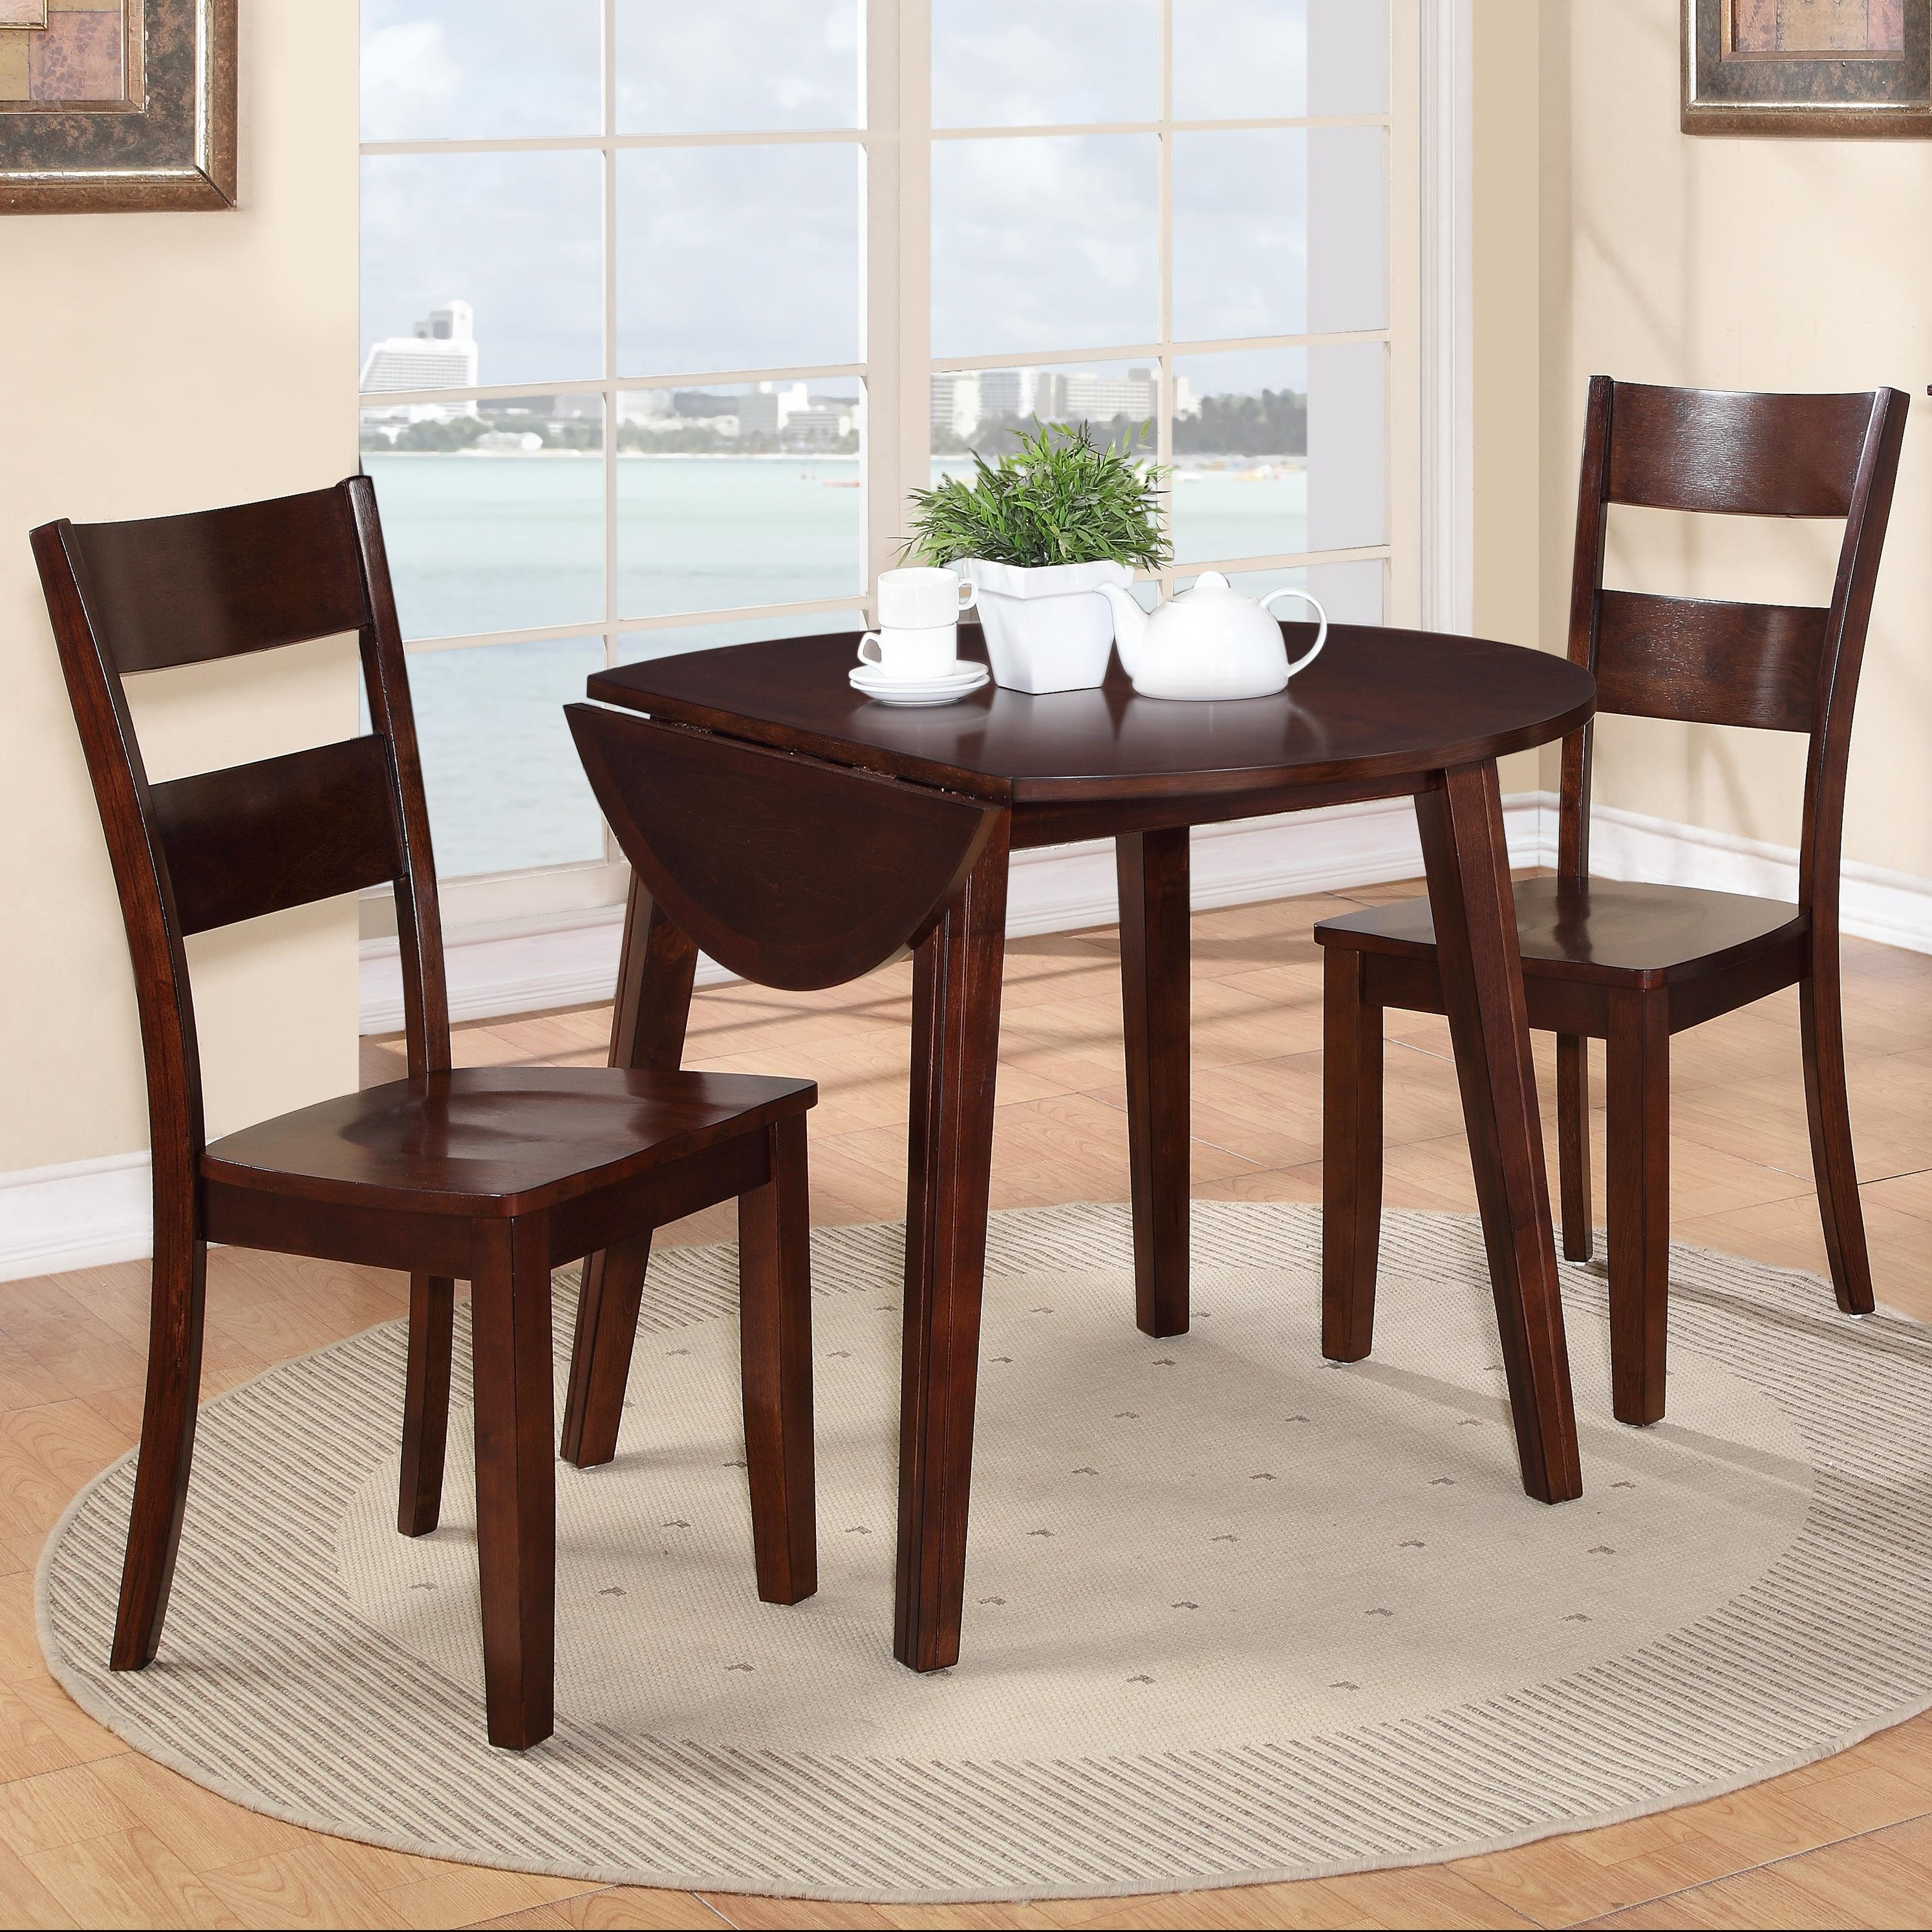 Holland House 8203 3 Piece Table And Chair Set   Item Number: 8203 4242